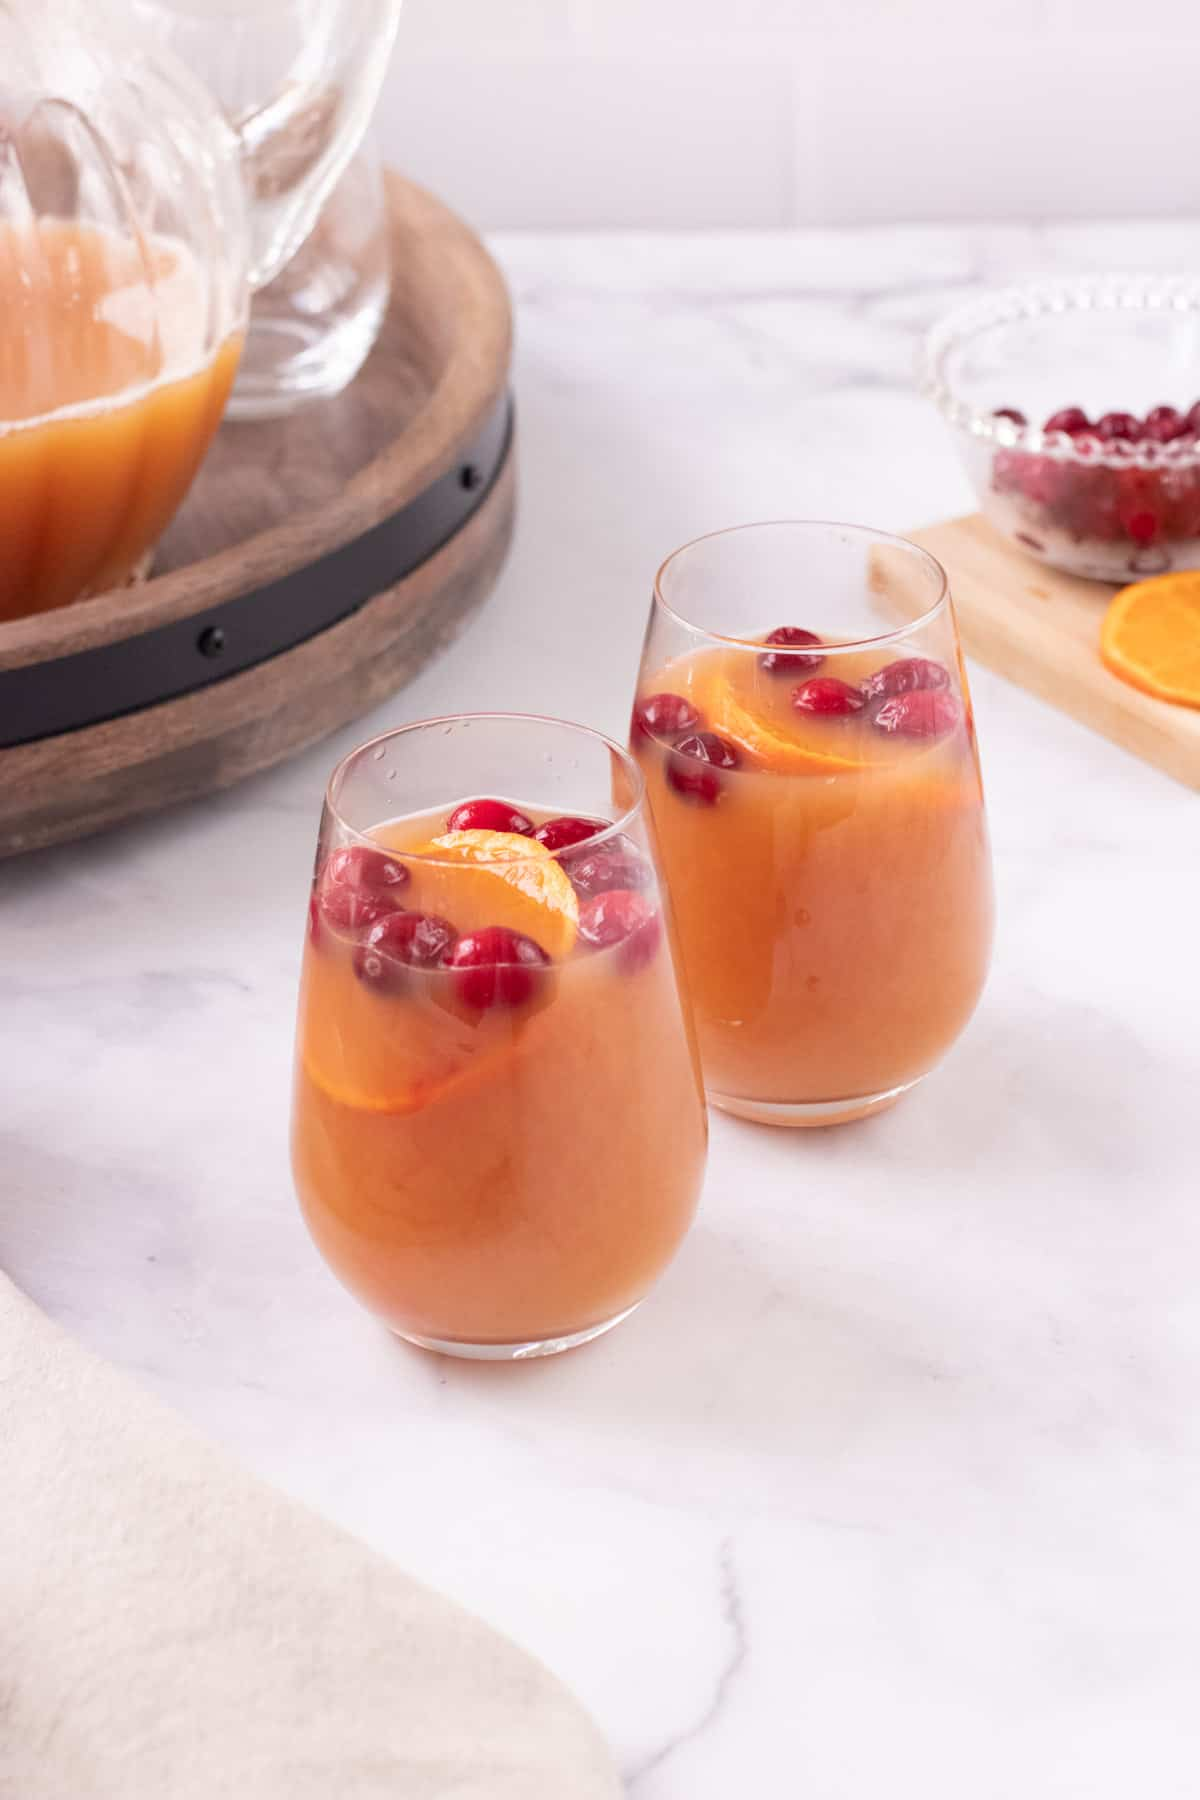 Two glasses of Orange Cranberry Tea with cranberries and orange slices floating as garnish and pitcher of tea mixture and bowl of cranberries and orange slices in background.